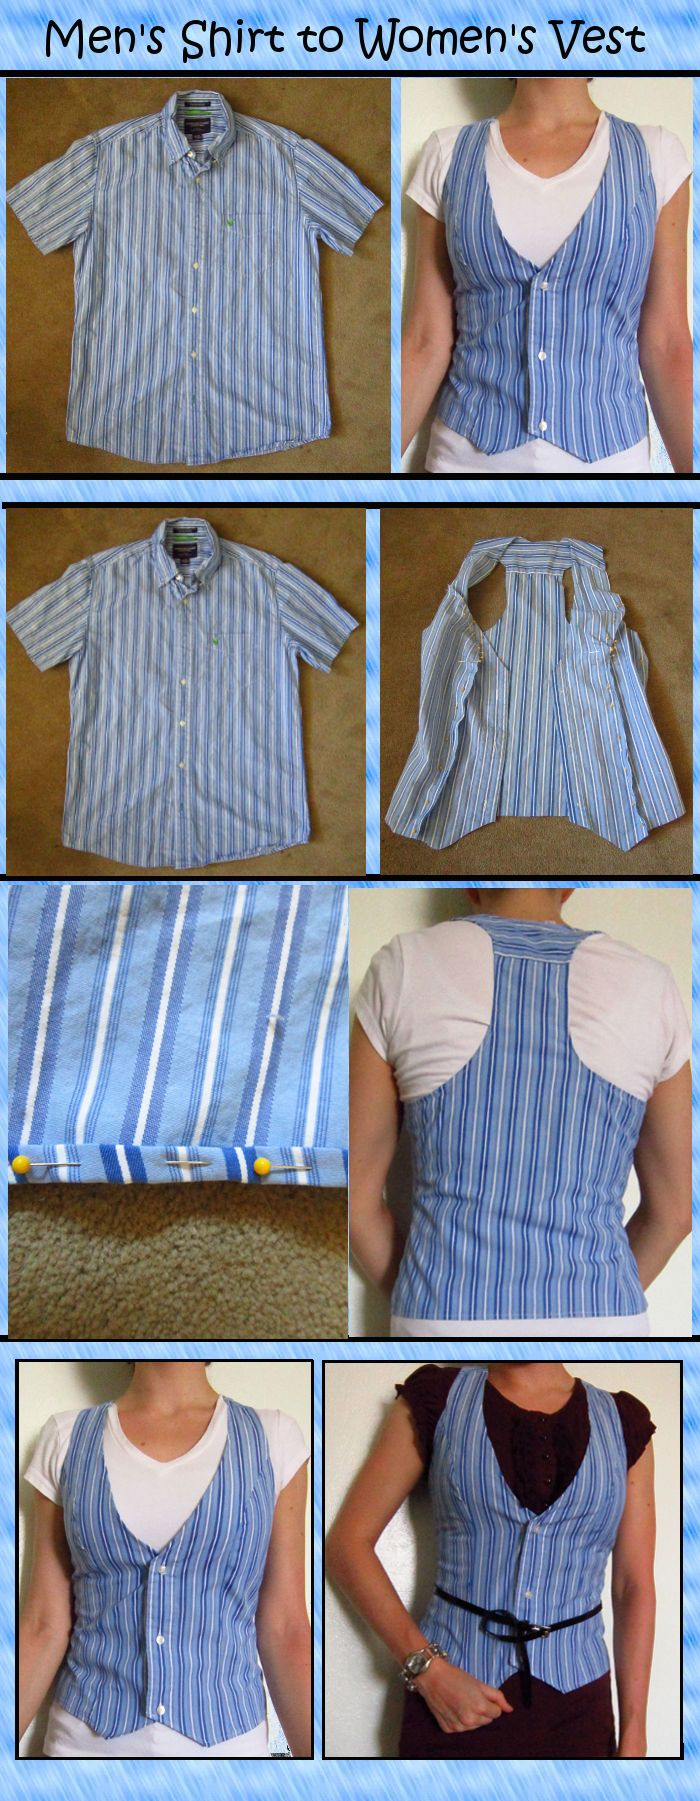 #Upcycle #Shirt to #Vest This shirt was headed to the D.I. This repurposed man shirt idea is one of the best I've yet to see.